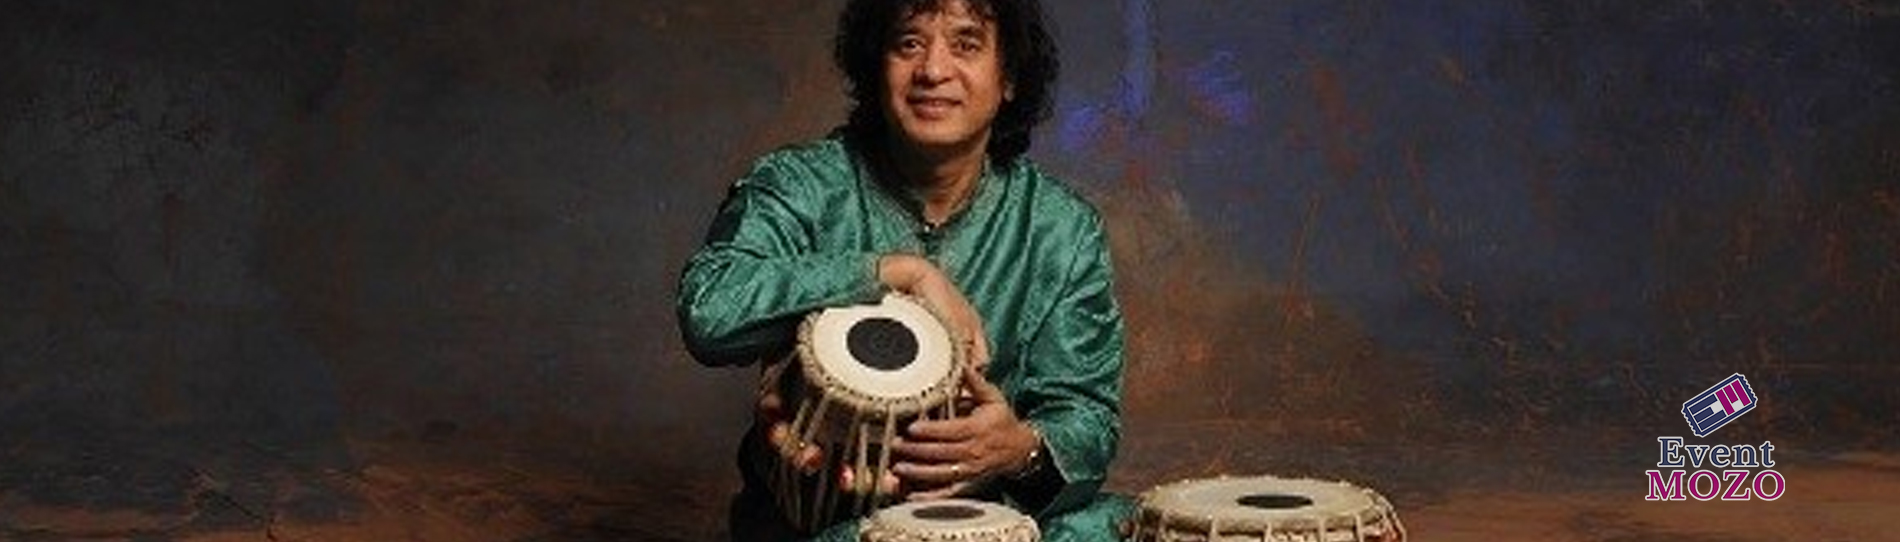 EventMozo Zakir Hussain, Tabla With Rakesh Chaurasia, Bansuri